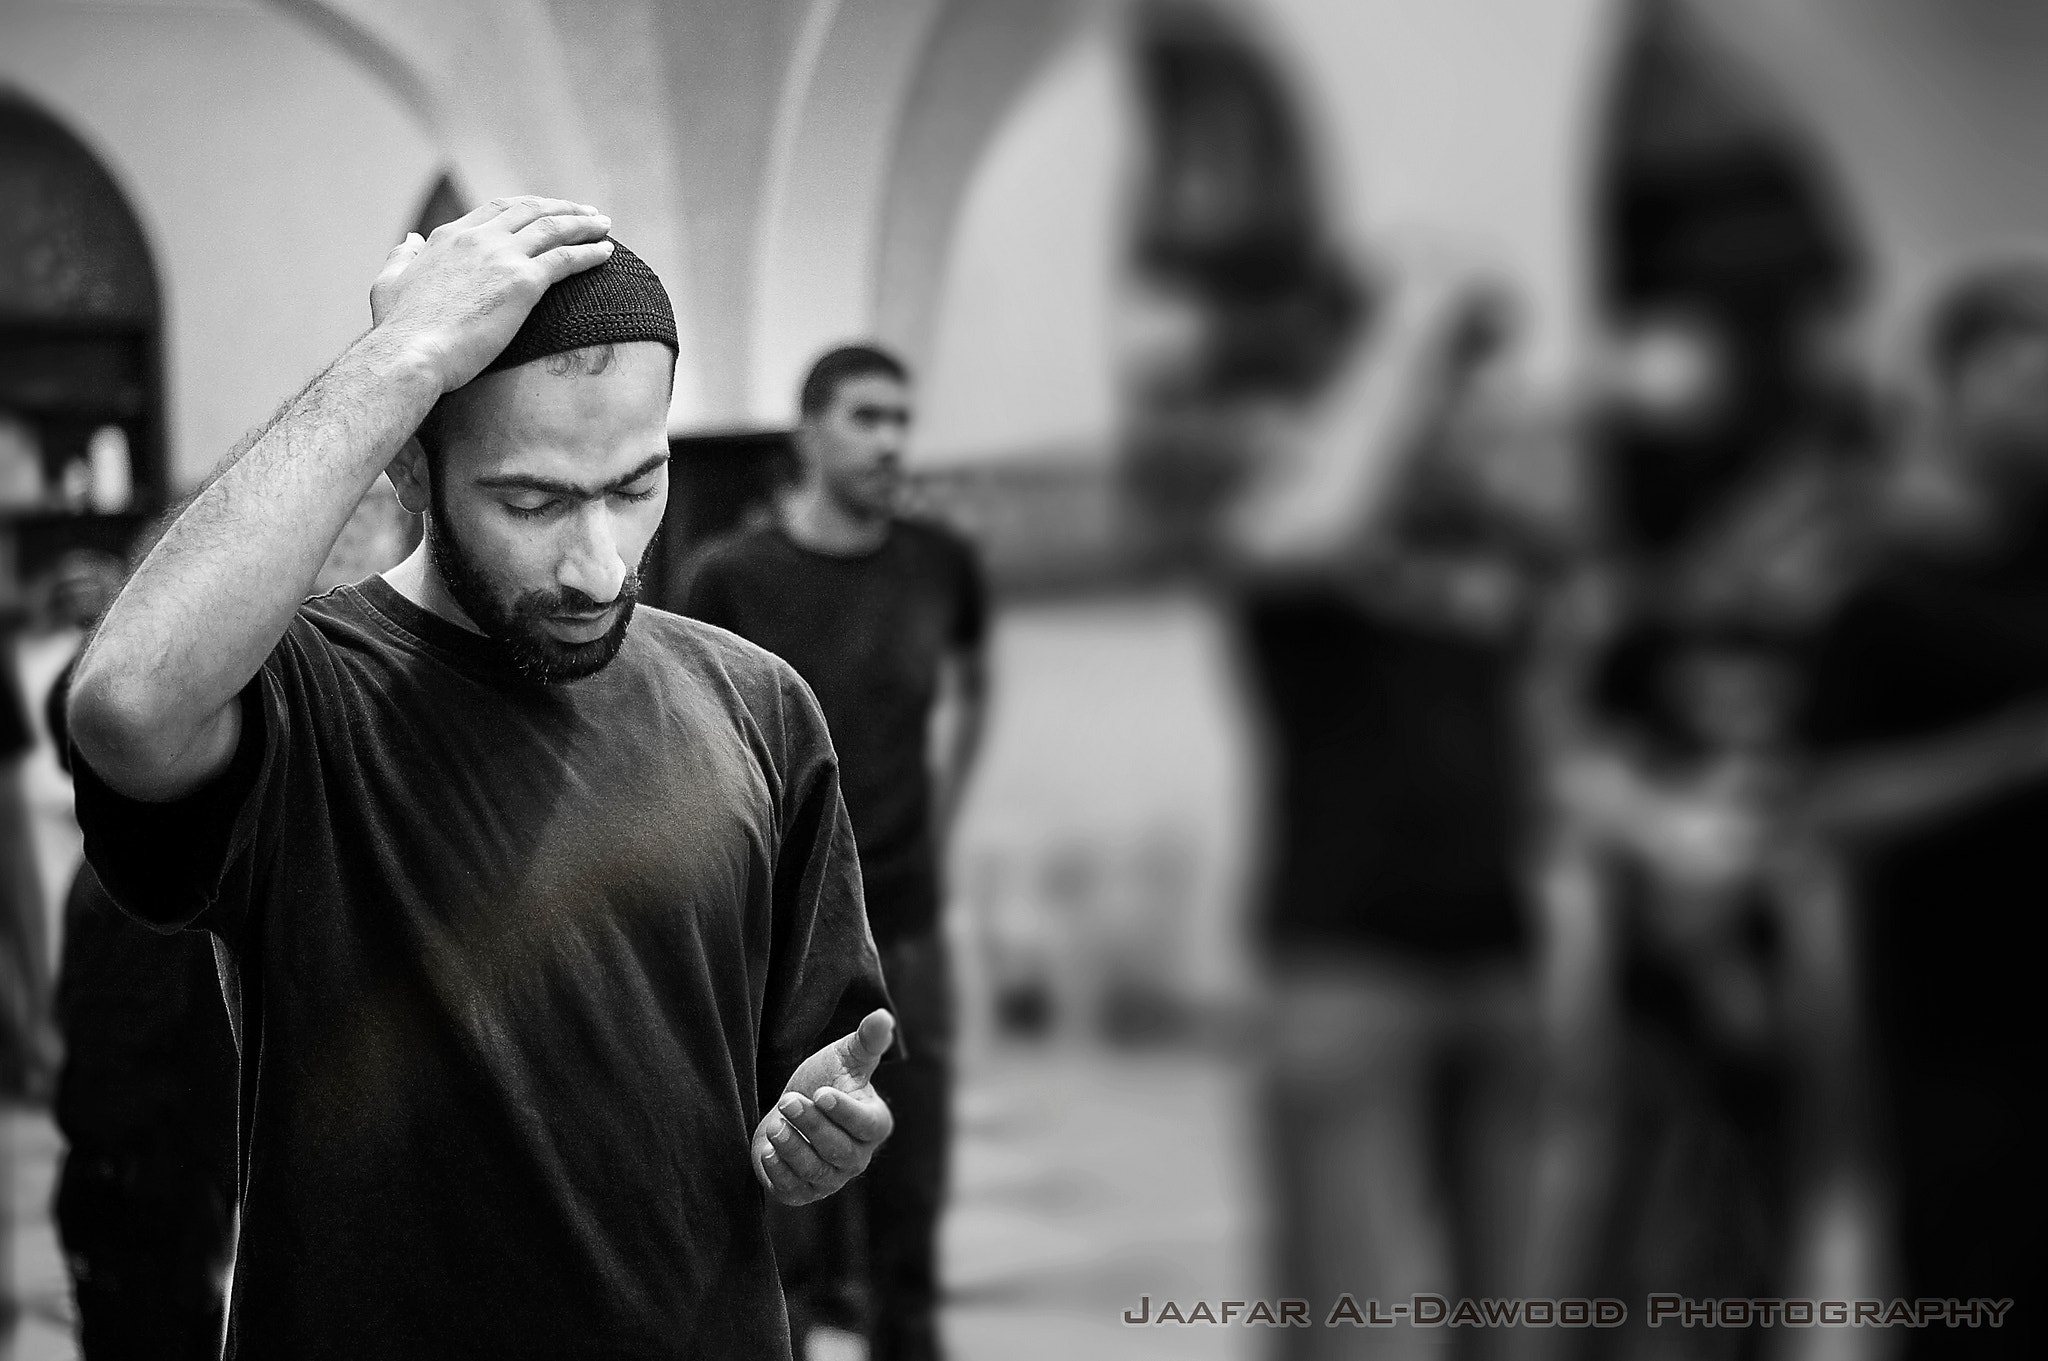 Photograph oh mahdi by jaafar al-dawood on 500px